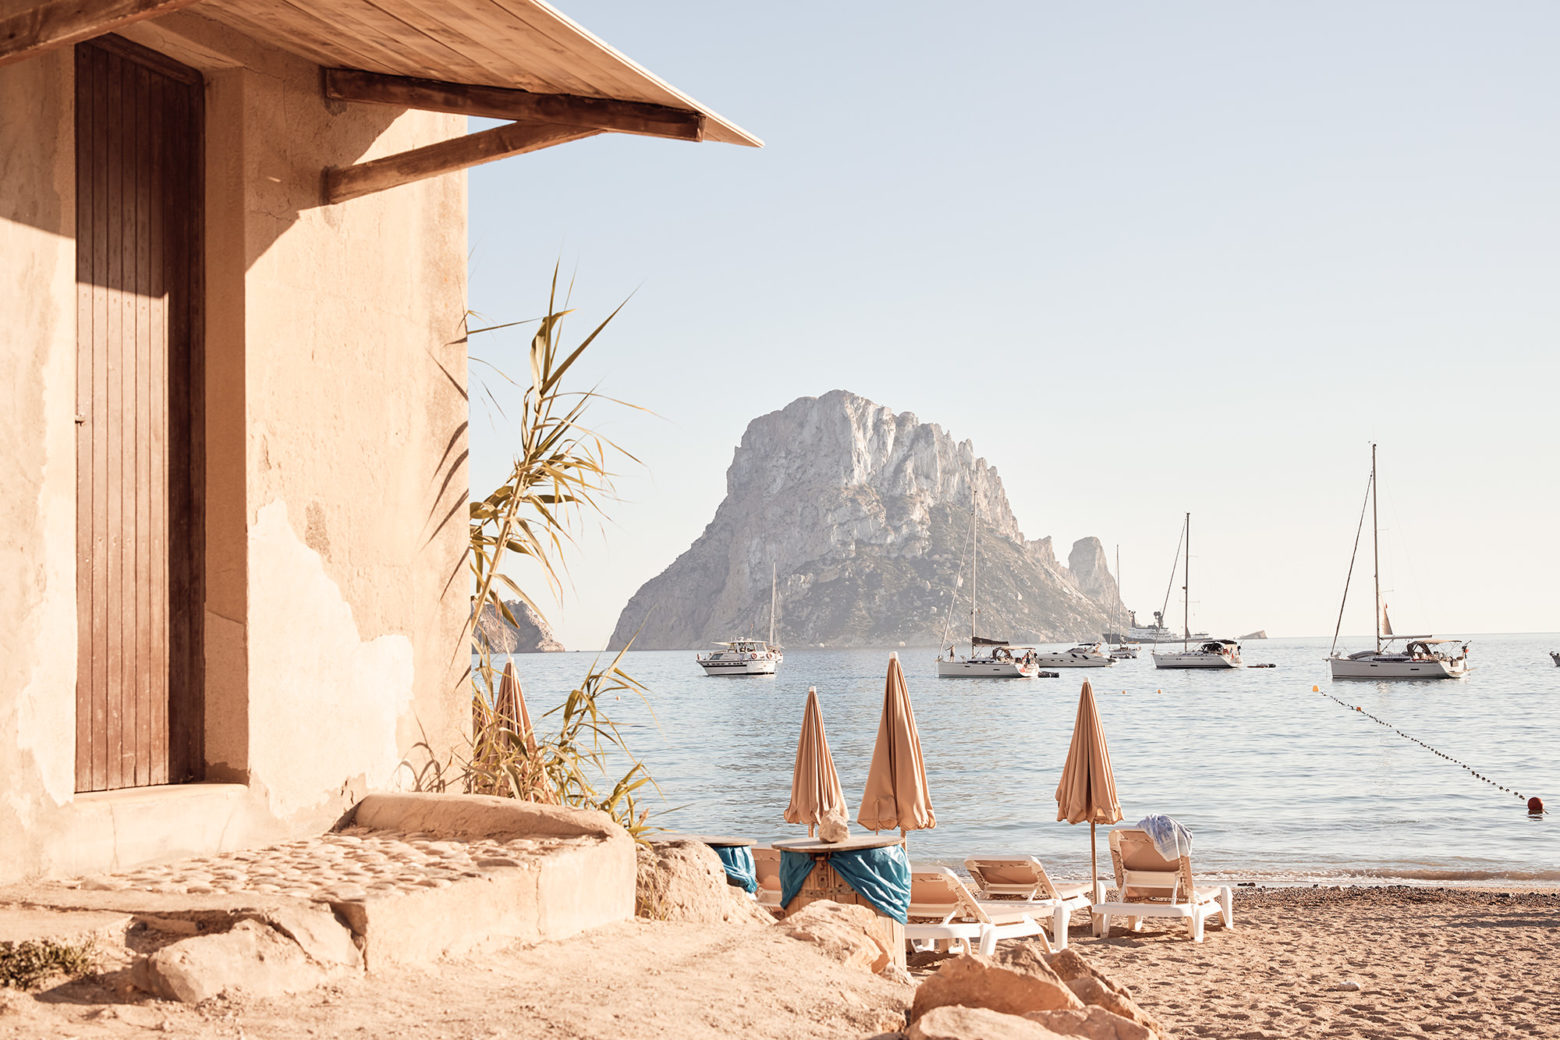 Magical Es Vedra, Ibiza - something very soothing looking at those huge rocks